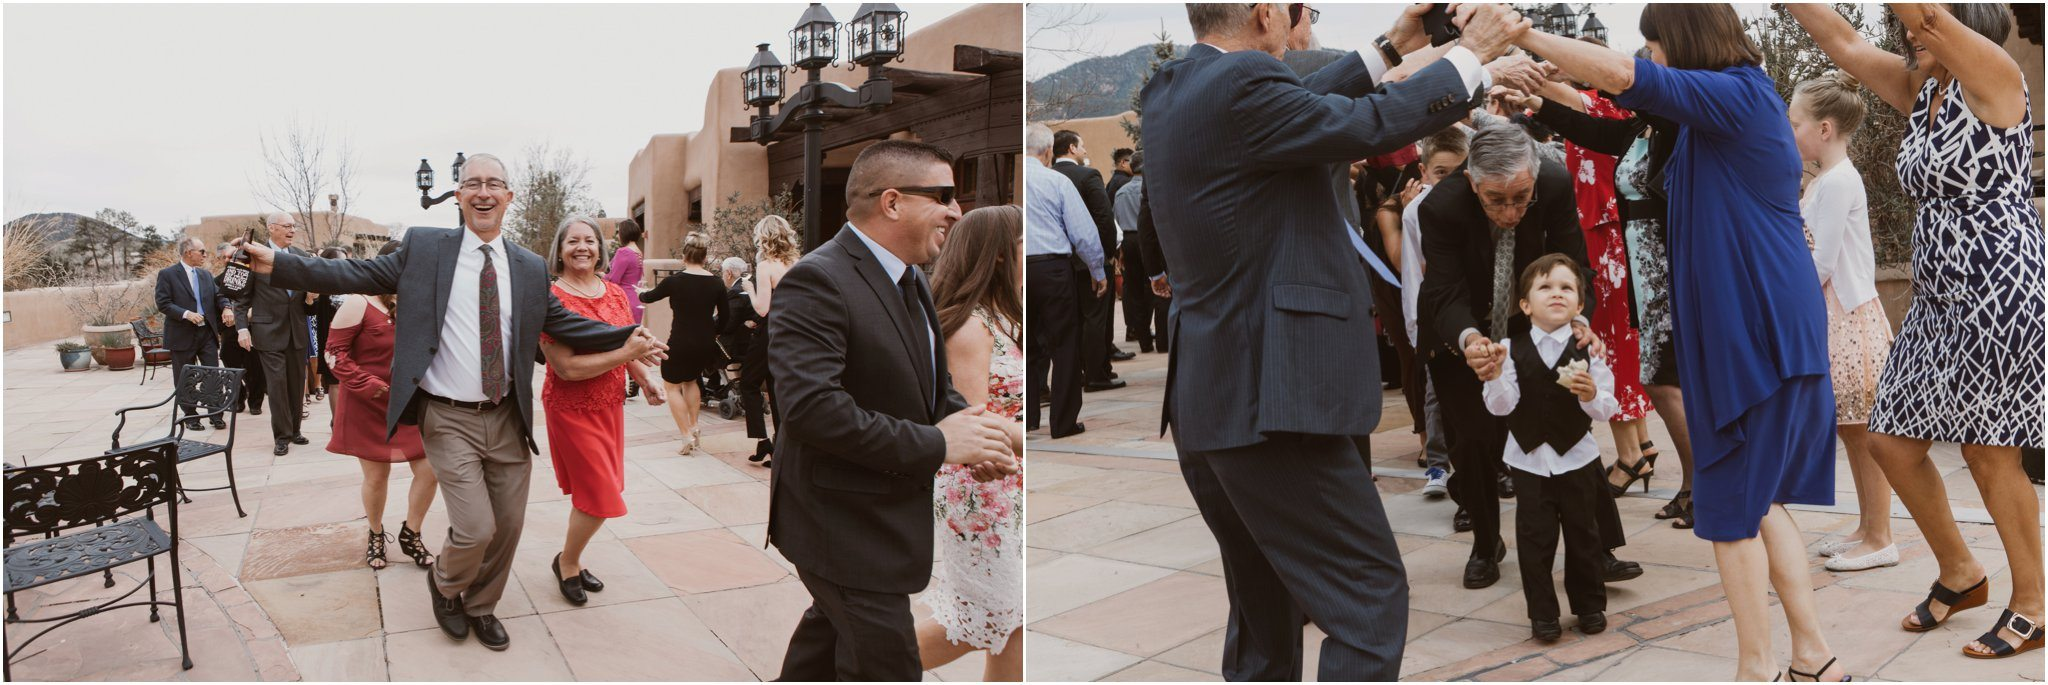 0023Albuquerque _ Santa Fe _ Wedding Photographers _ New Mexico Wedding Photography